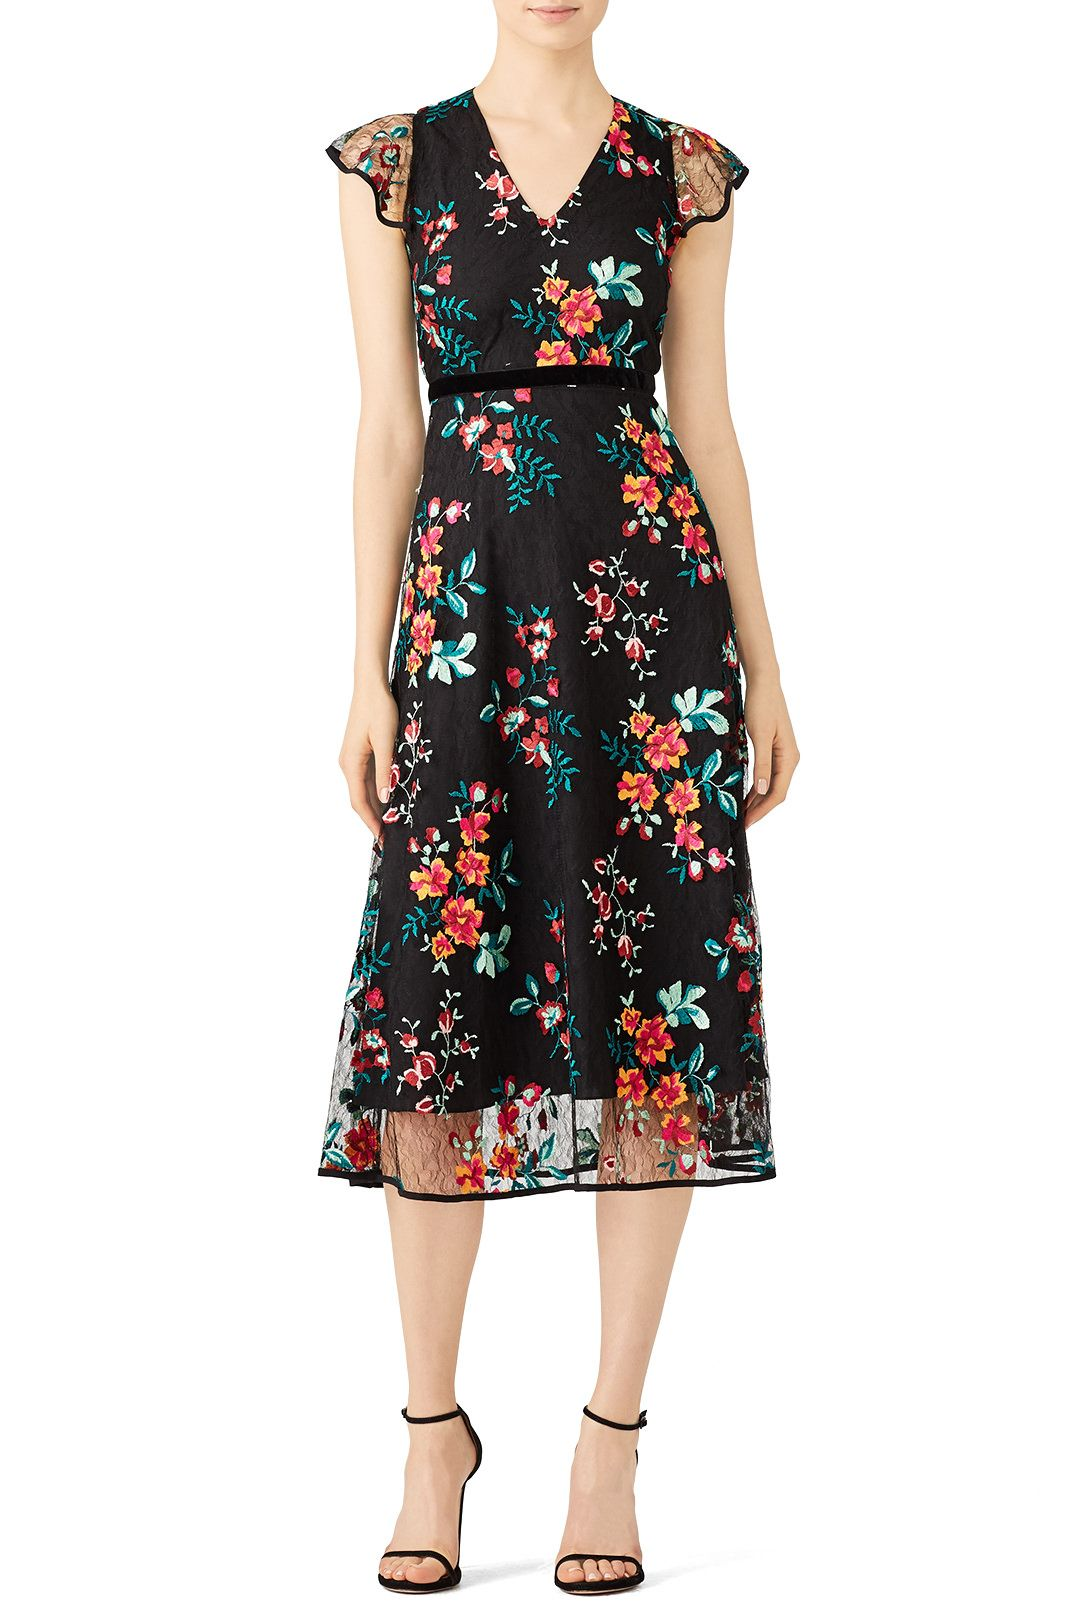 Rent Black Floral Lace Dress By Hunter Bell For 60 Only At